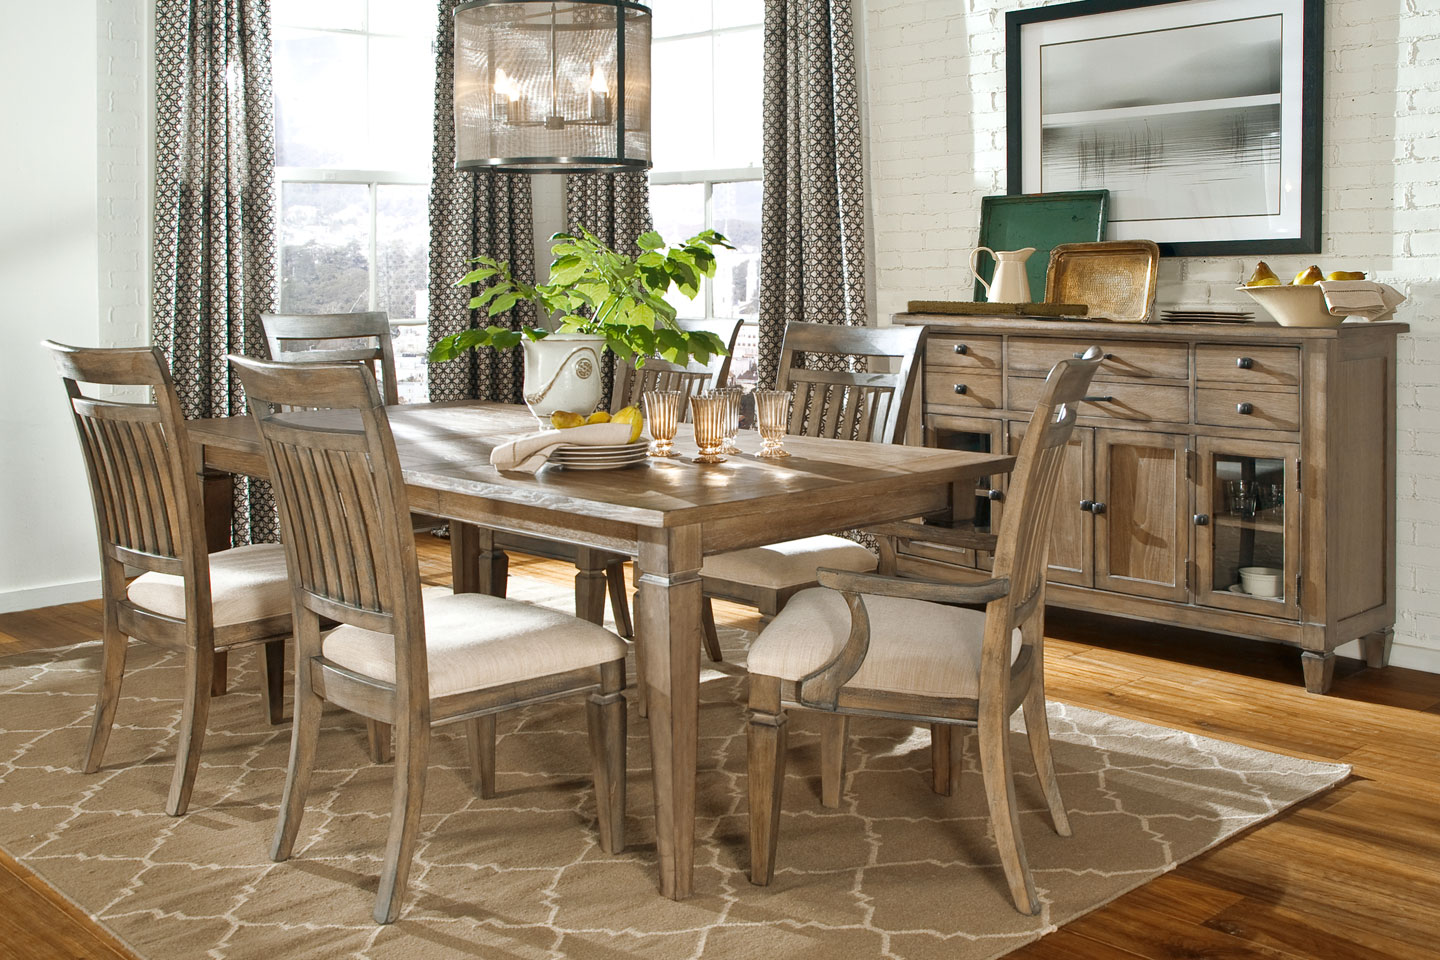 Gavin rustic formal dining room set fine dining furniture for Dining room furniture